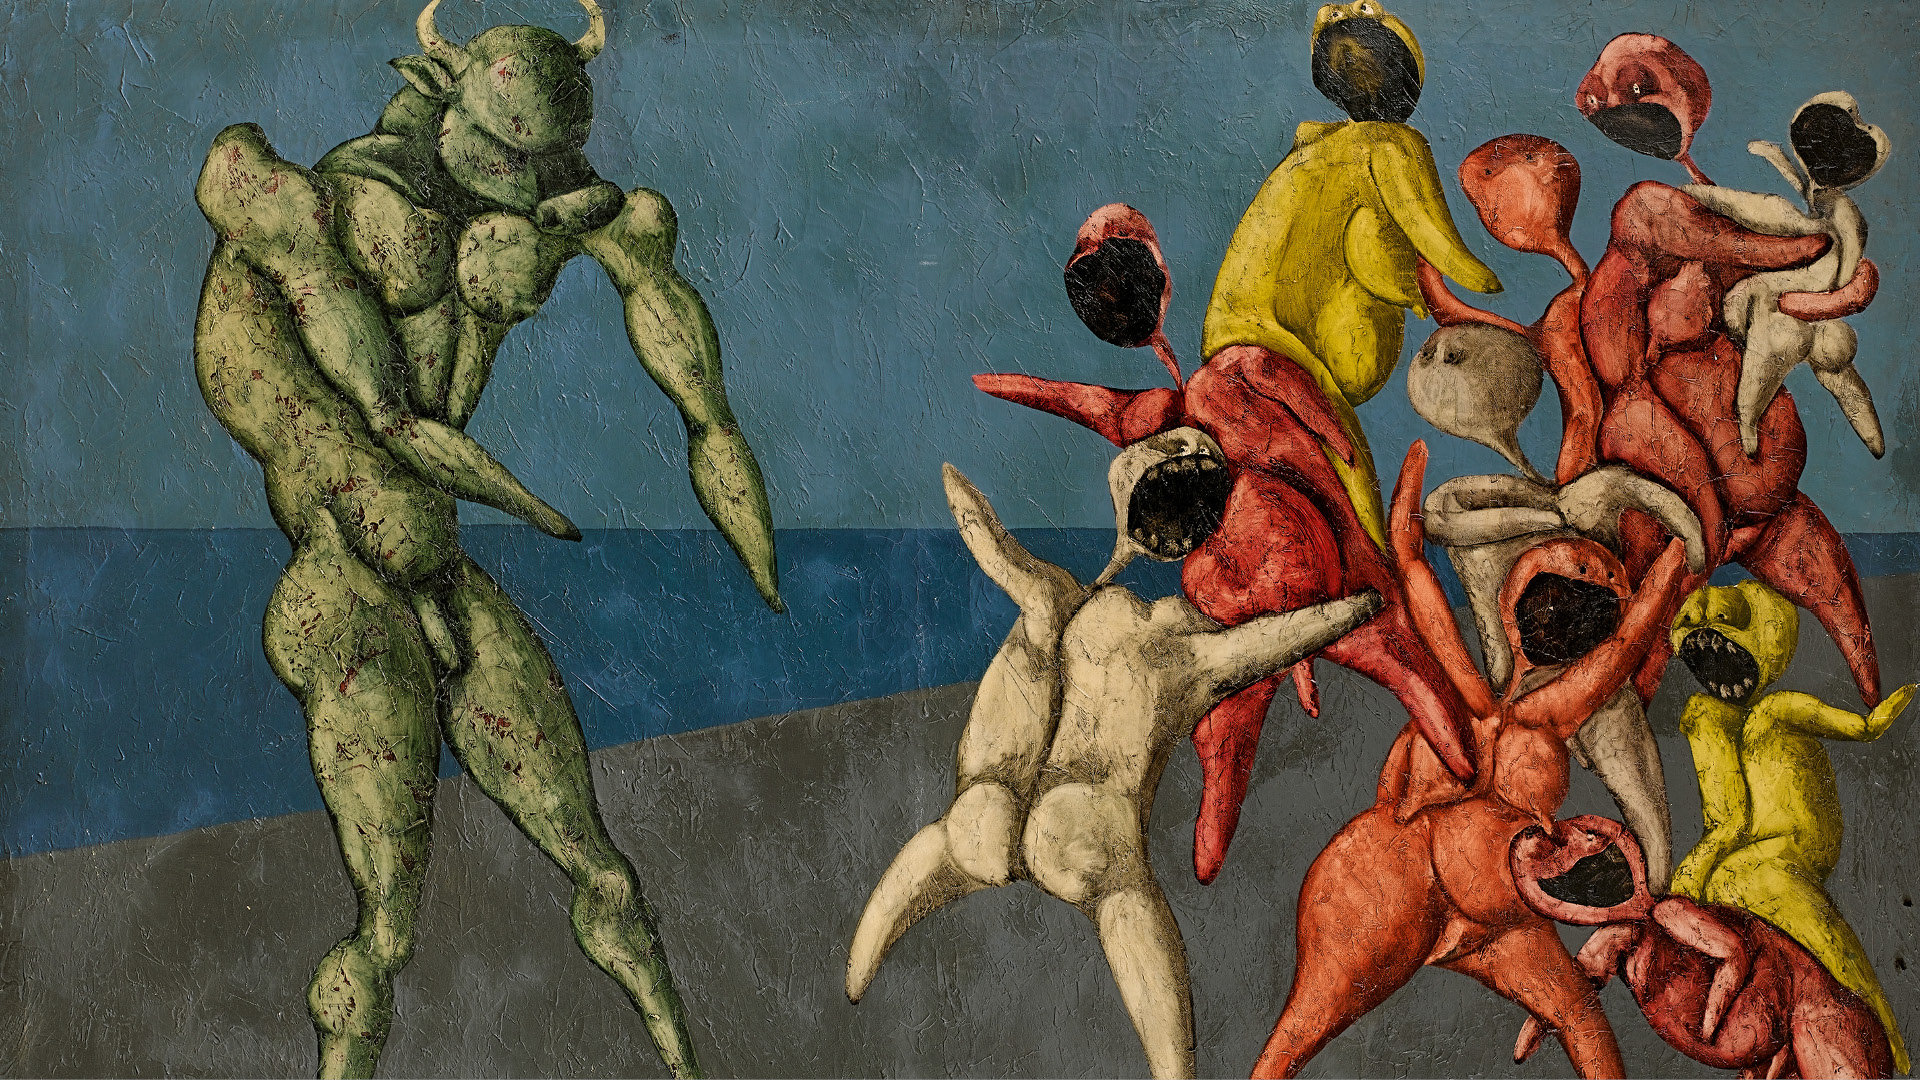 Bazaar Art gets an in-depth look at a rare work by Iranian Modernist Bahman Mohasses on sale at Sotheby's upcoming auction on 20th Century/Middle Eastern Art sale